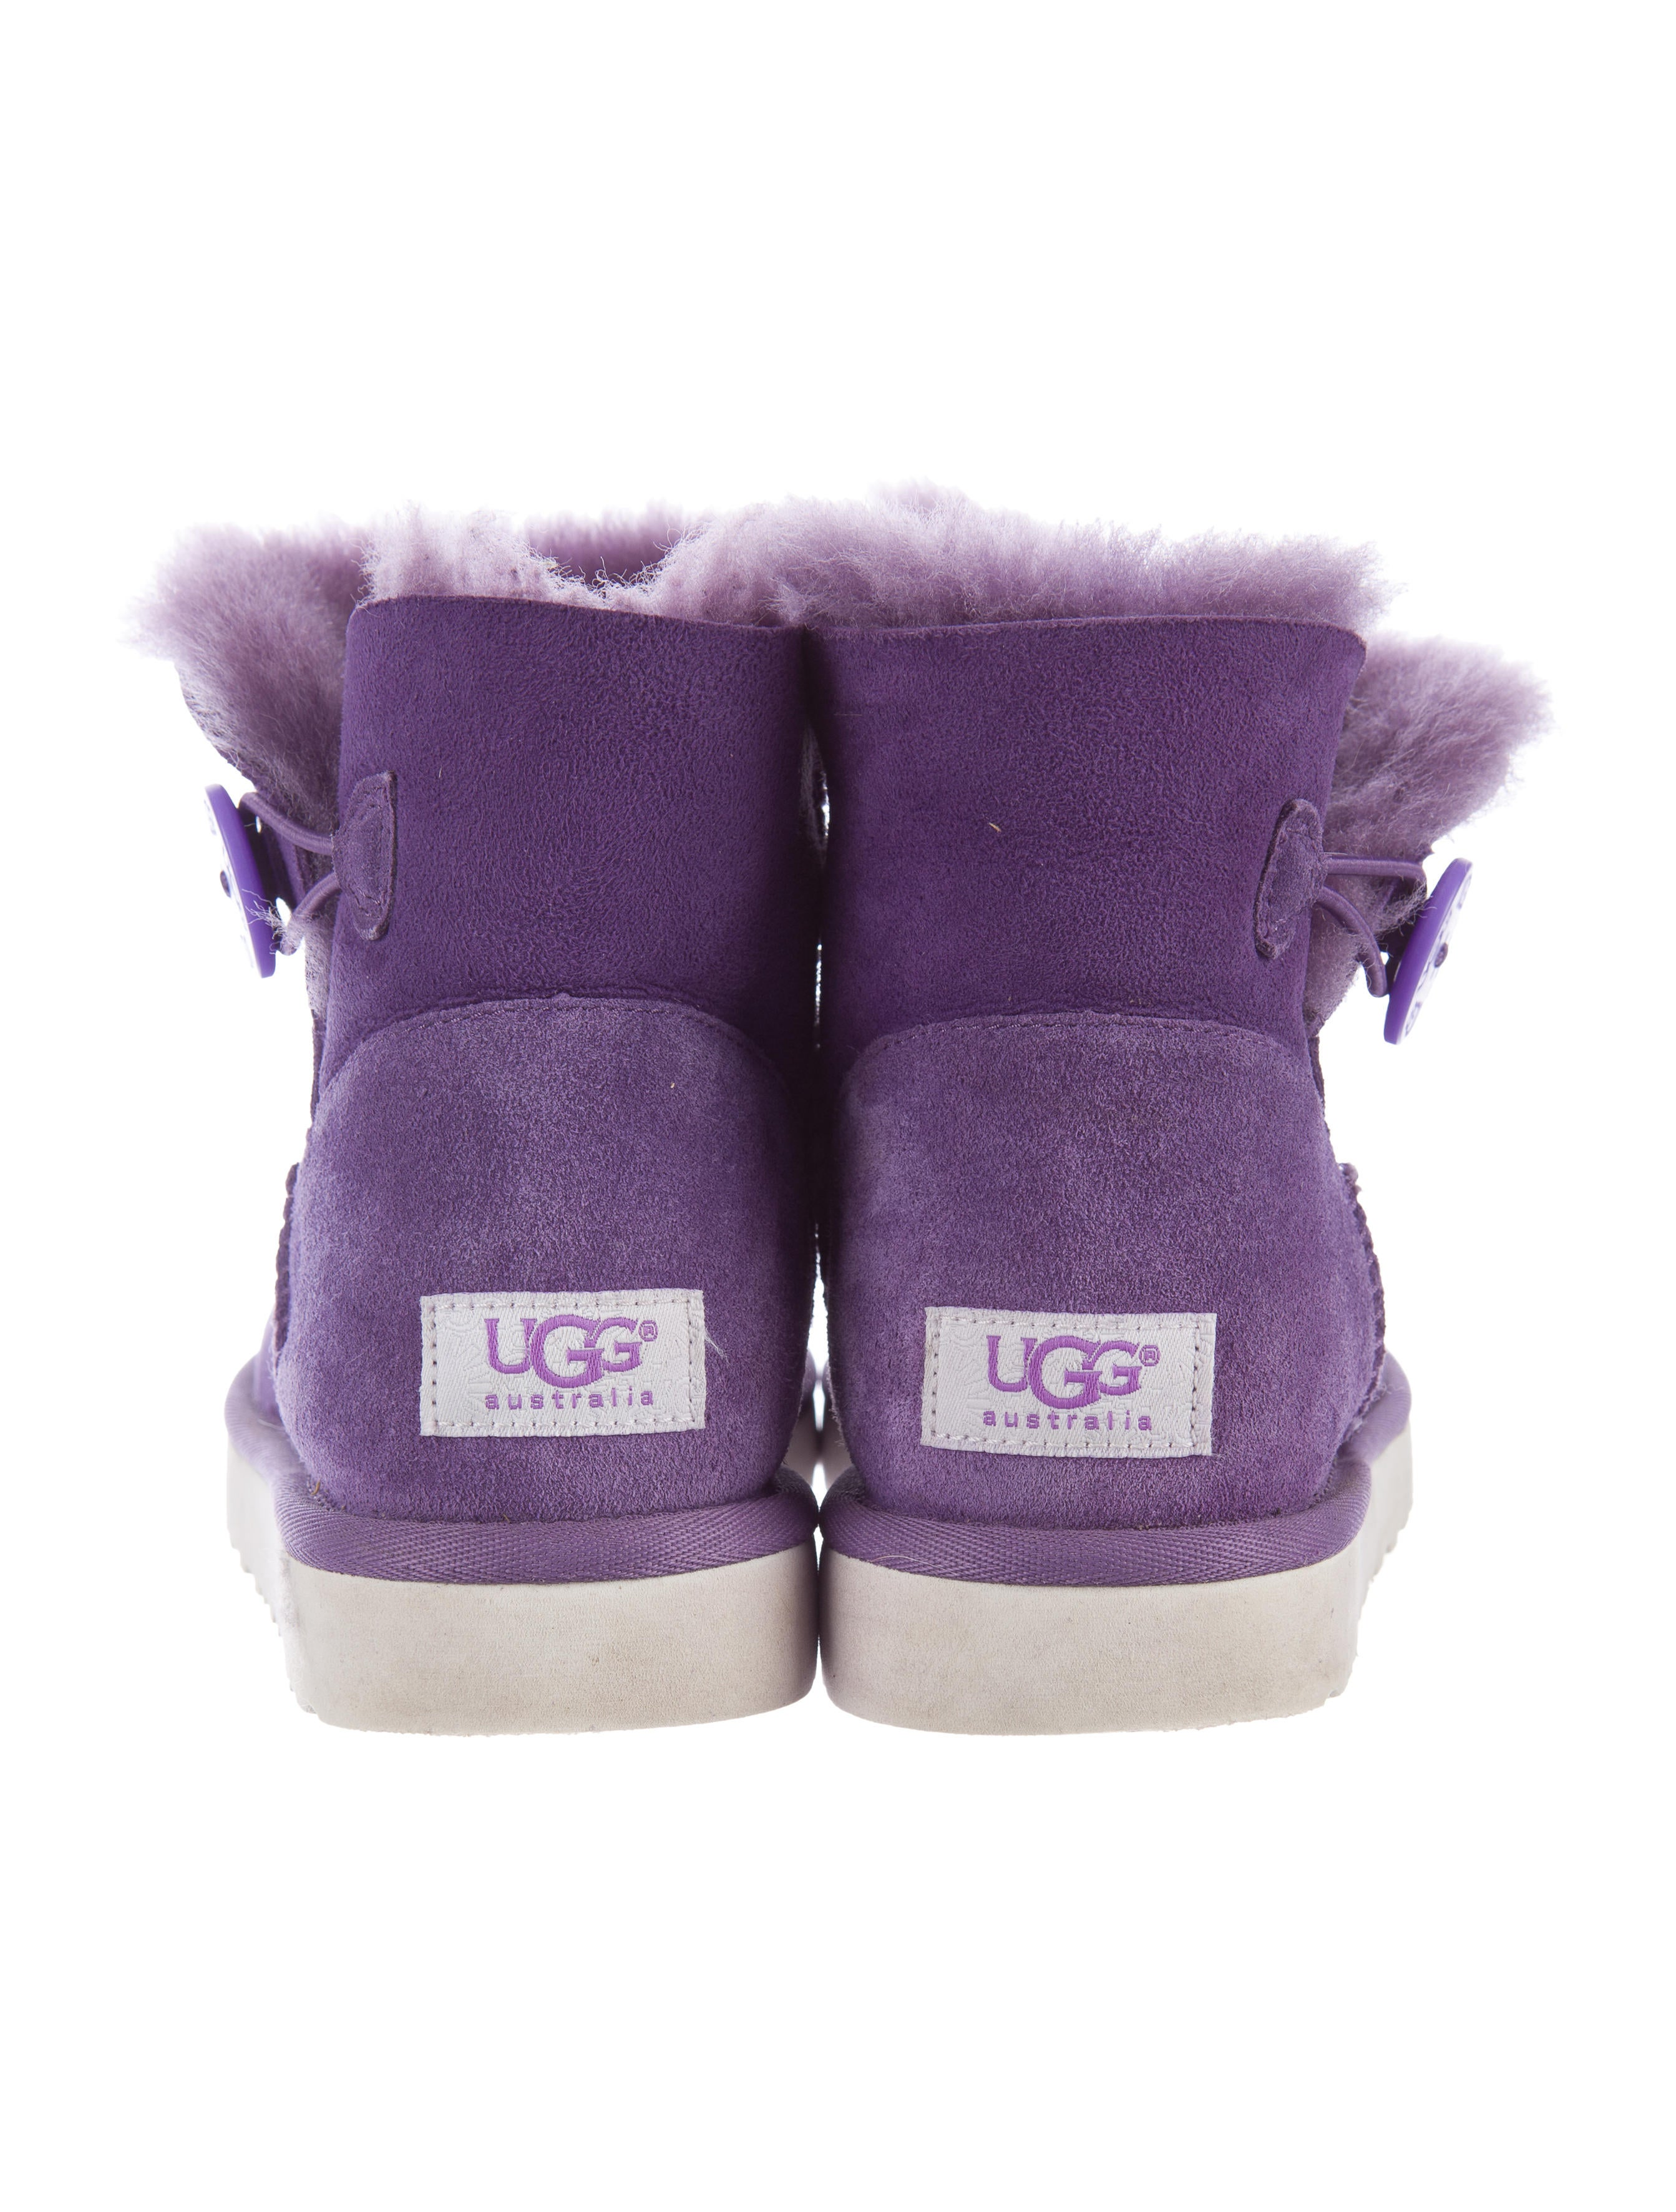 Ugg Boots Online Guaranteed Before Xmas | Division of Global Affairs